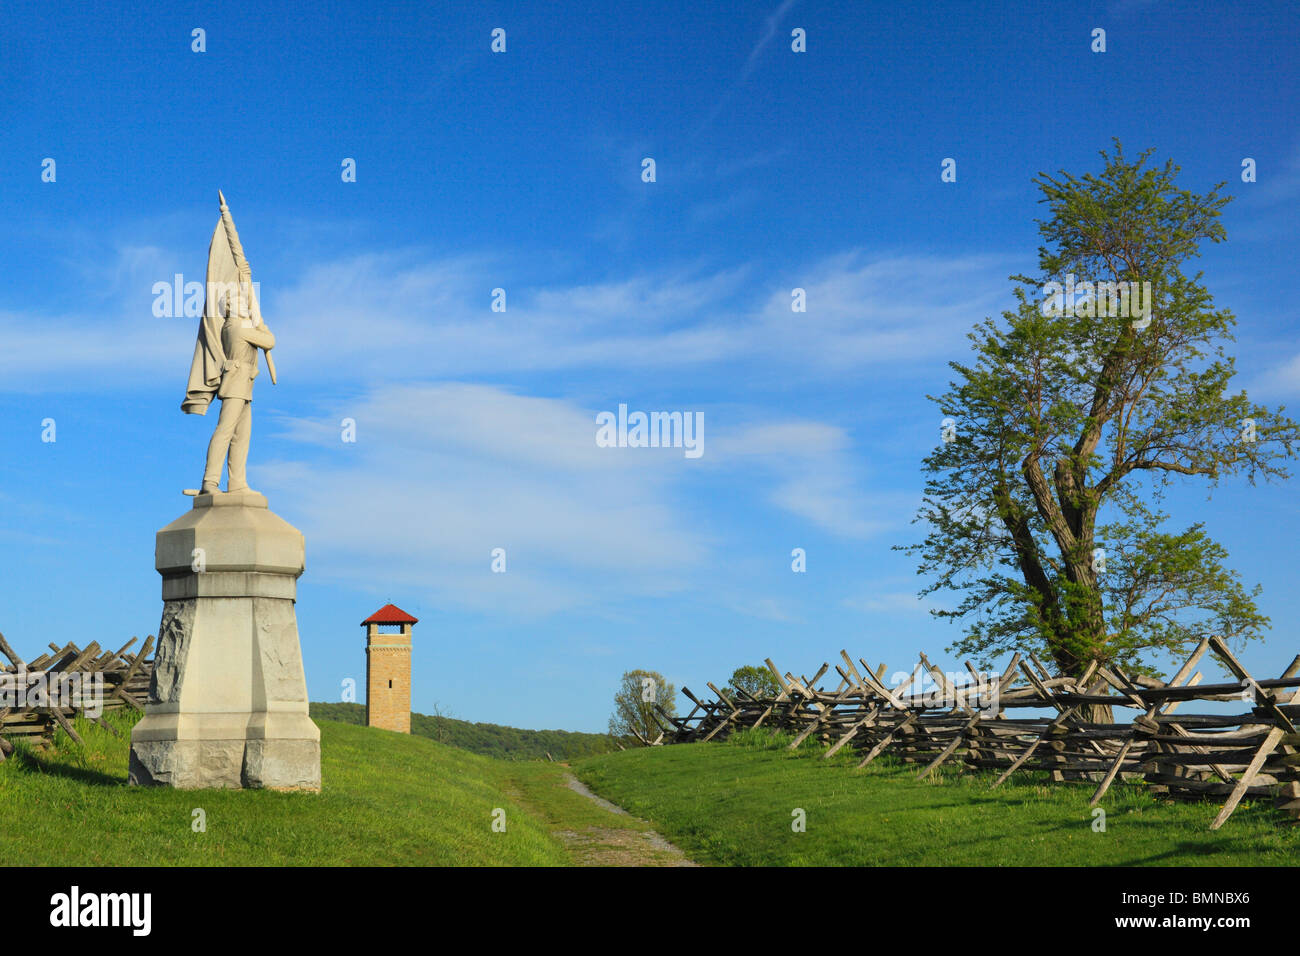 132nd Pennsylvania Monument and Observation Tower, Antietam National Battlefield, Sharpsburg, Maryland, USA - Stock Image